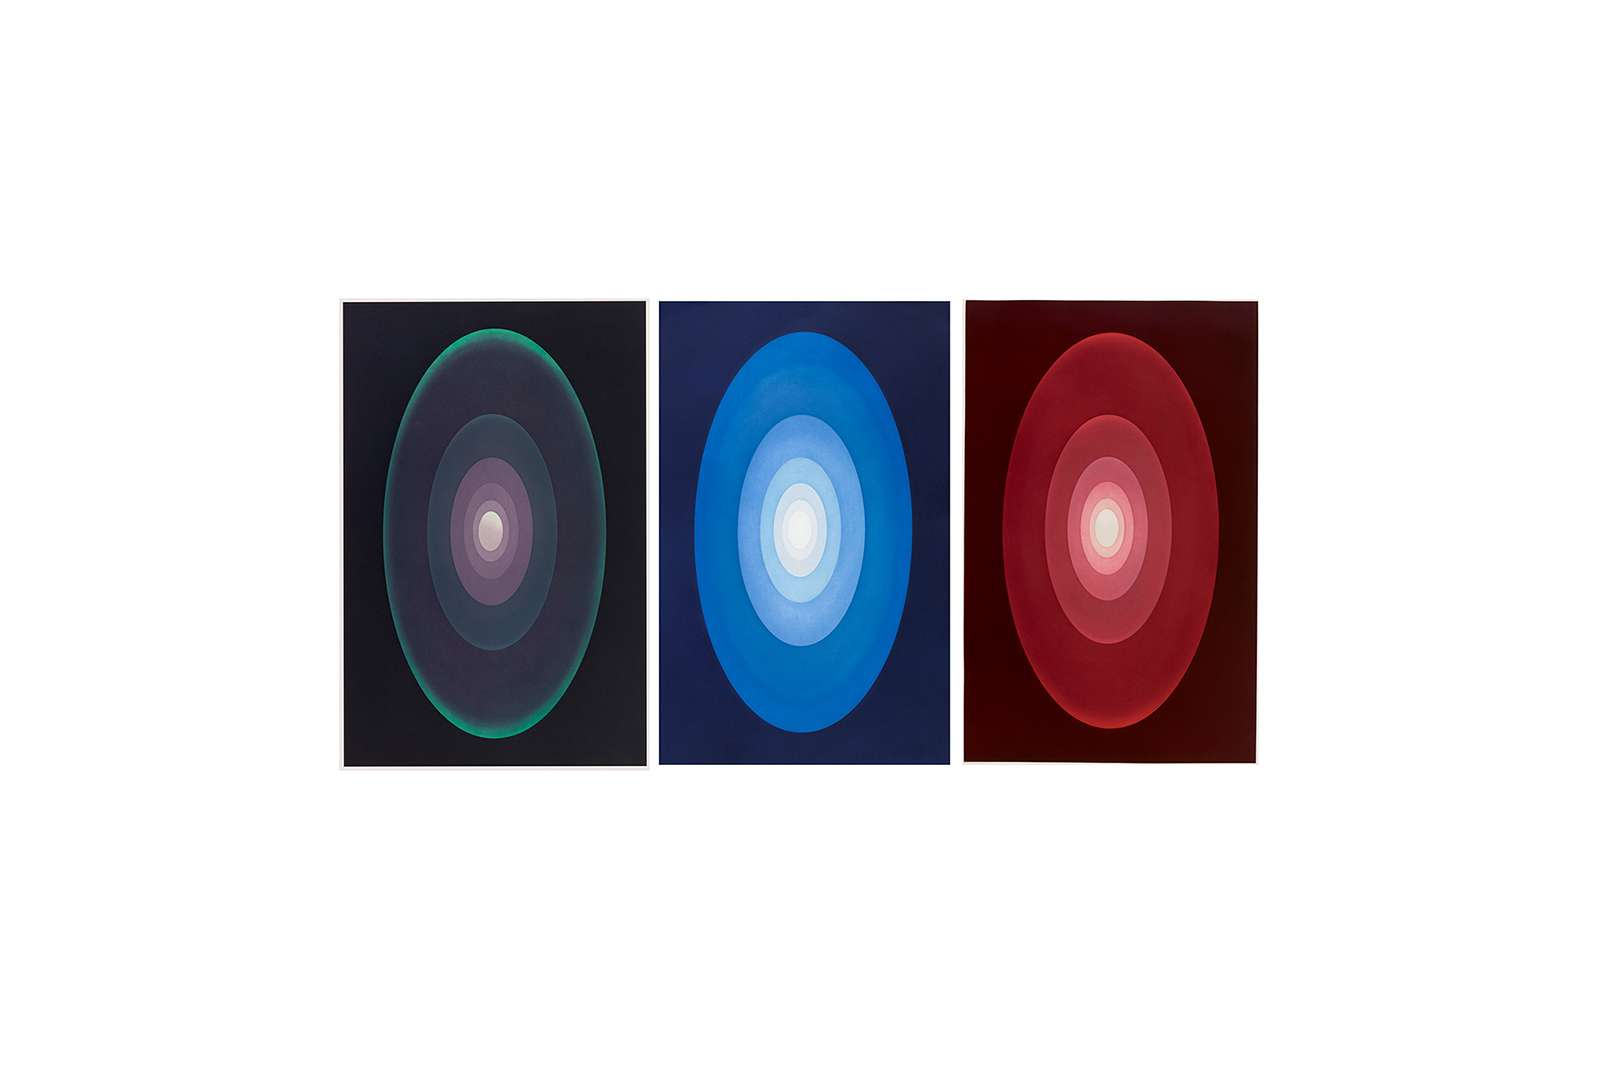 James Turrell, Suite from Aten Reign, 2014. Suite of three aquatints. 34 3/4 x 22 inches each. Edition of 30.